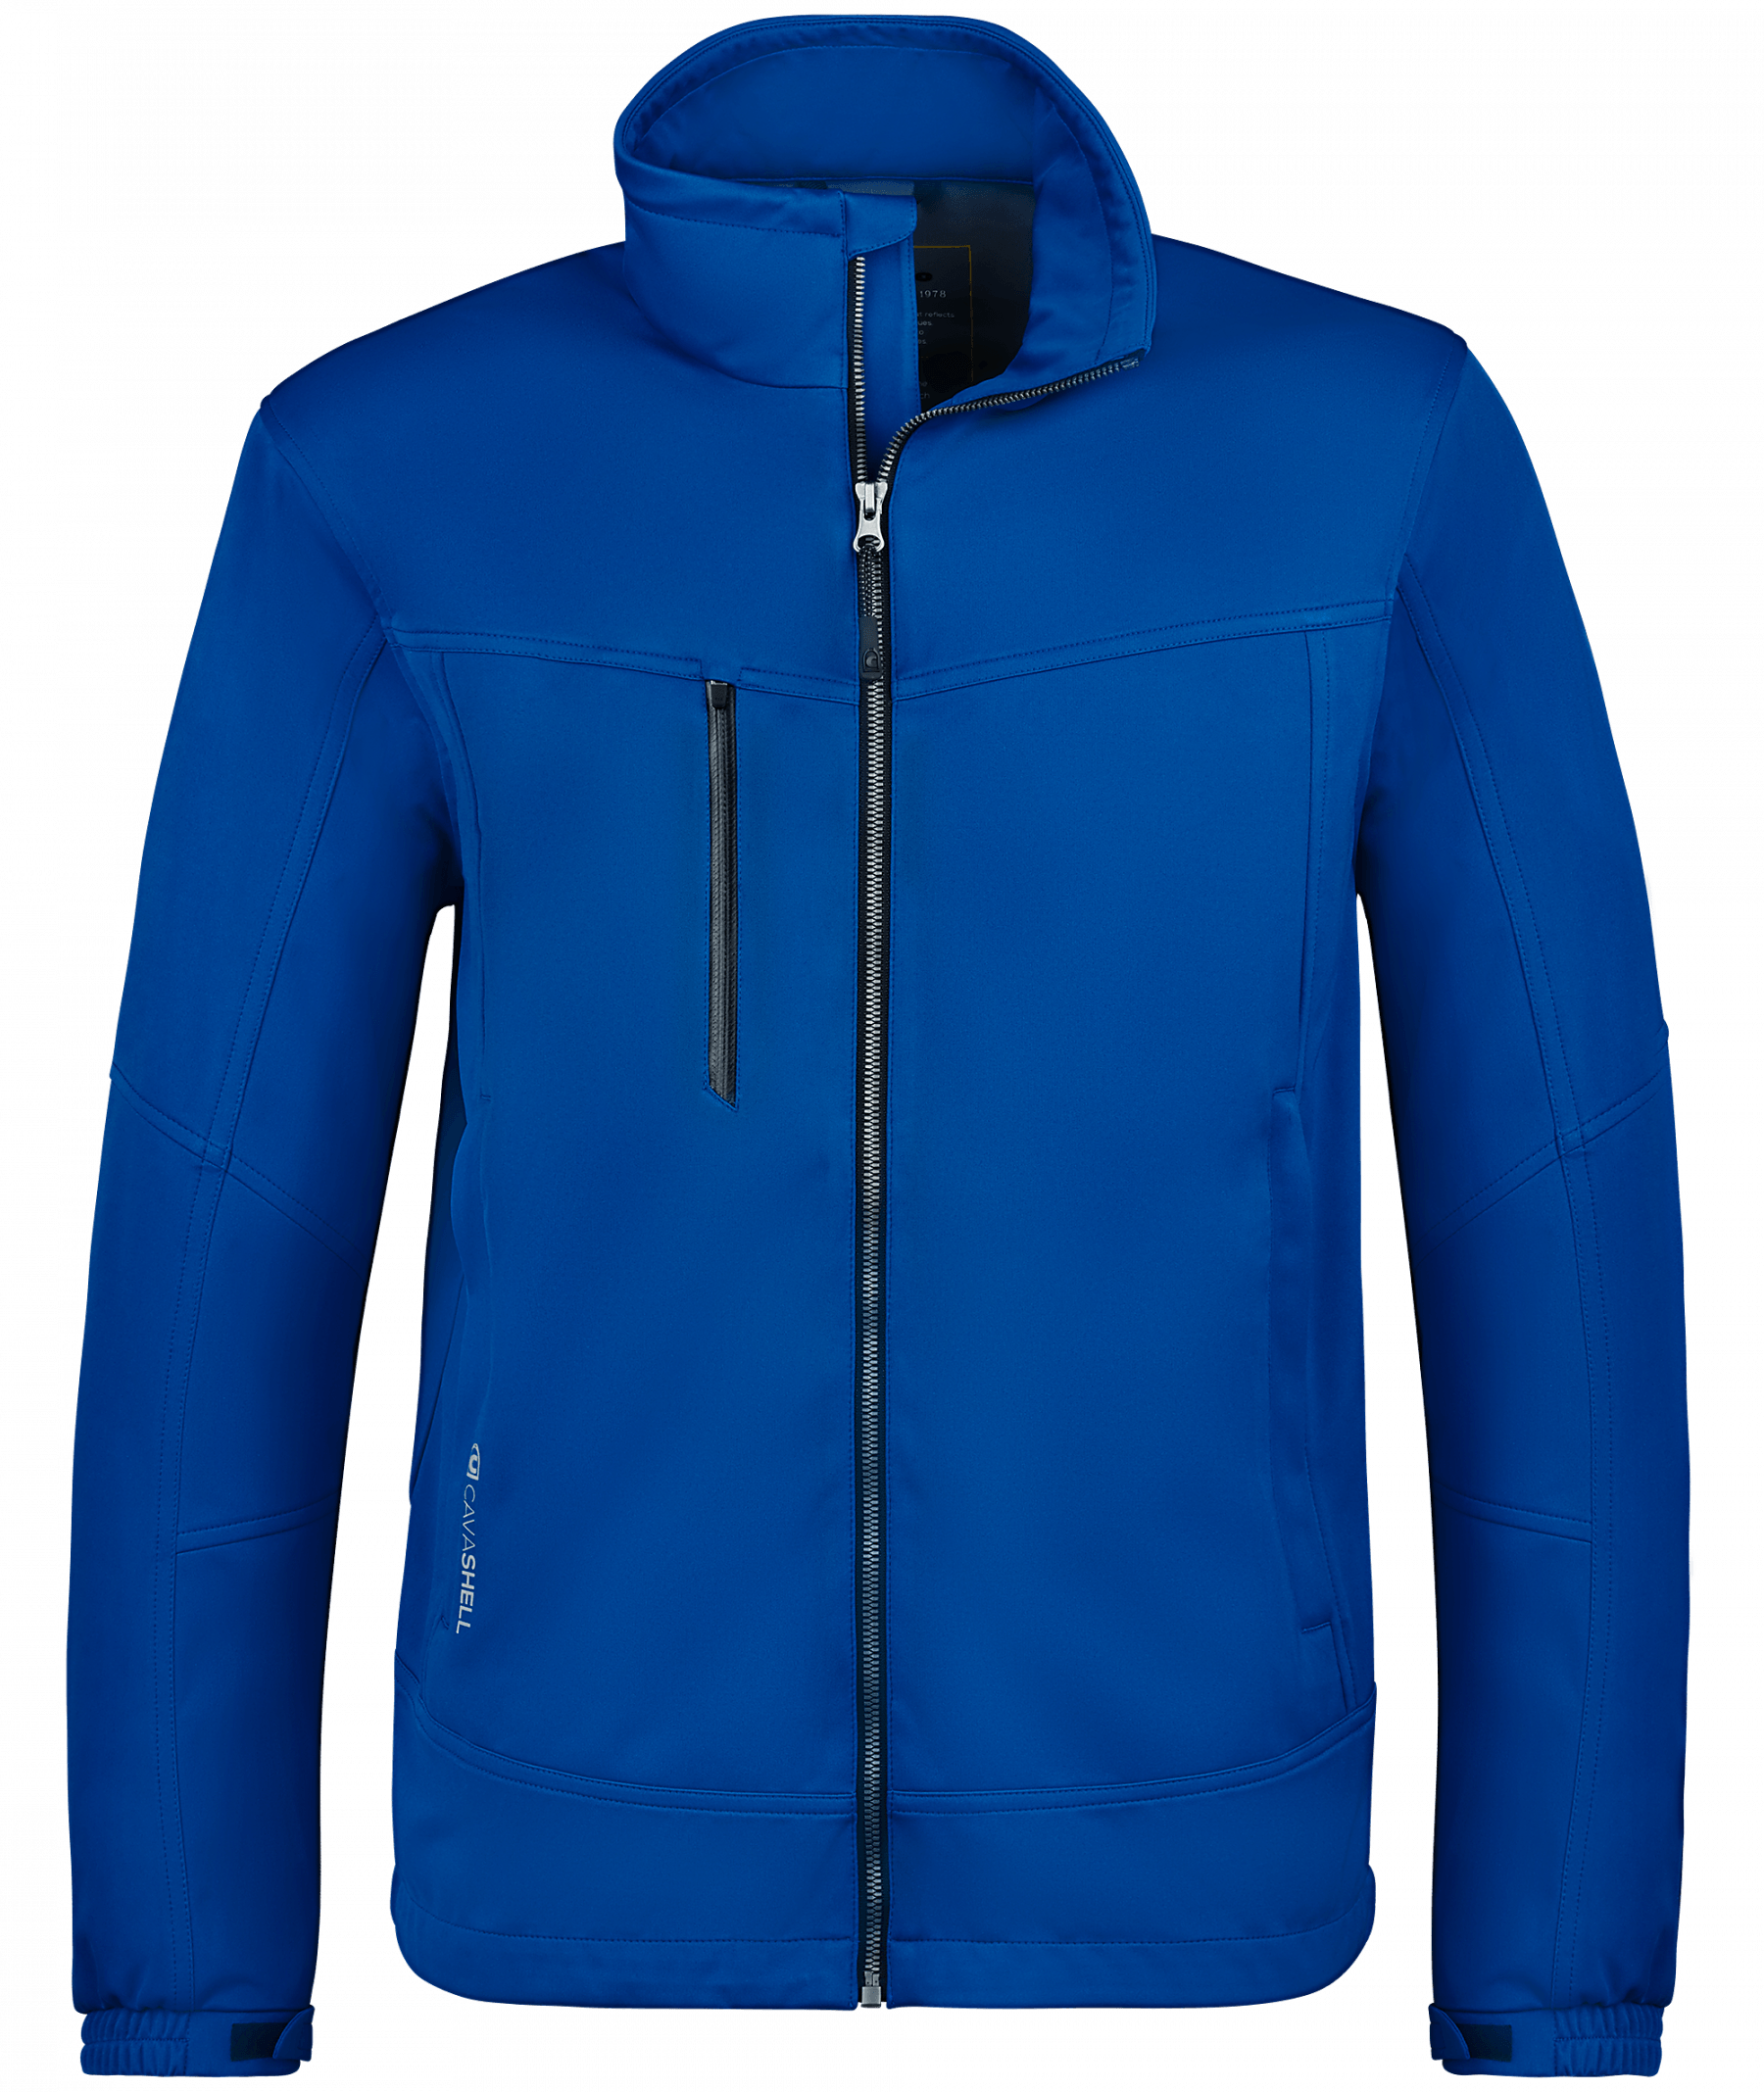 Cavallo Herren Winddichte Softshelljacke Ian in Cosmic Blue